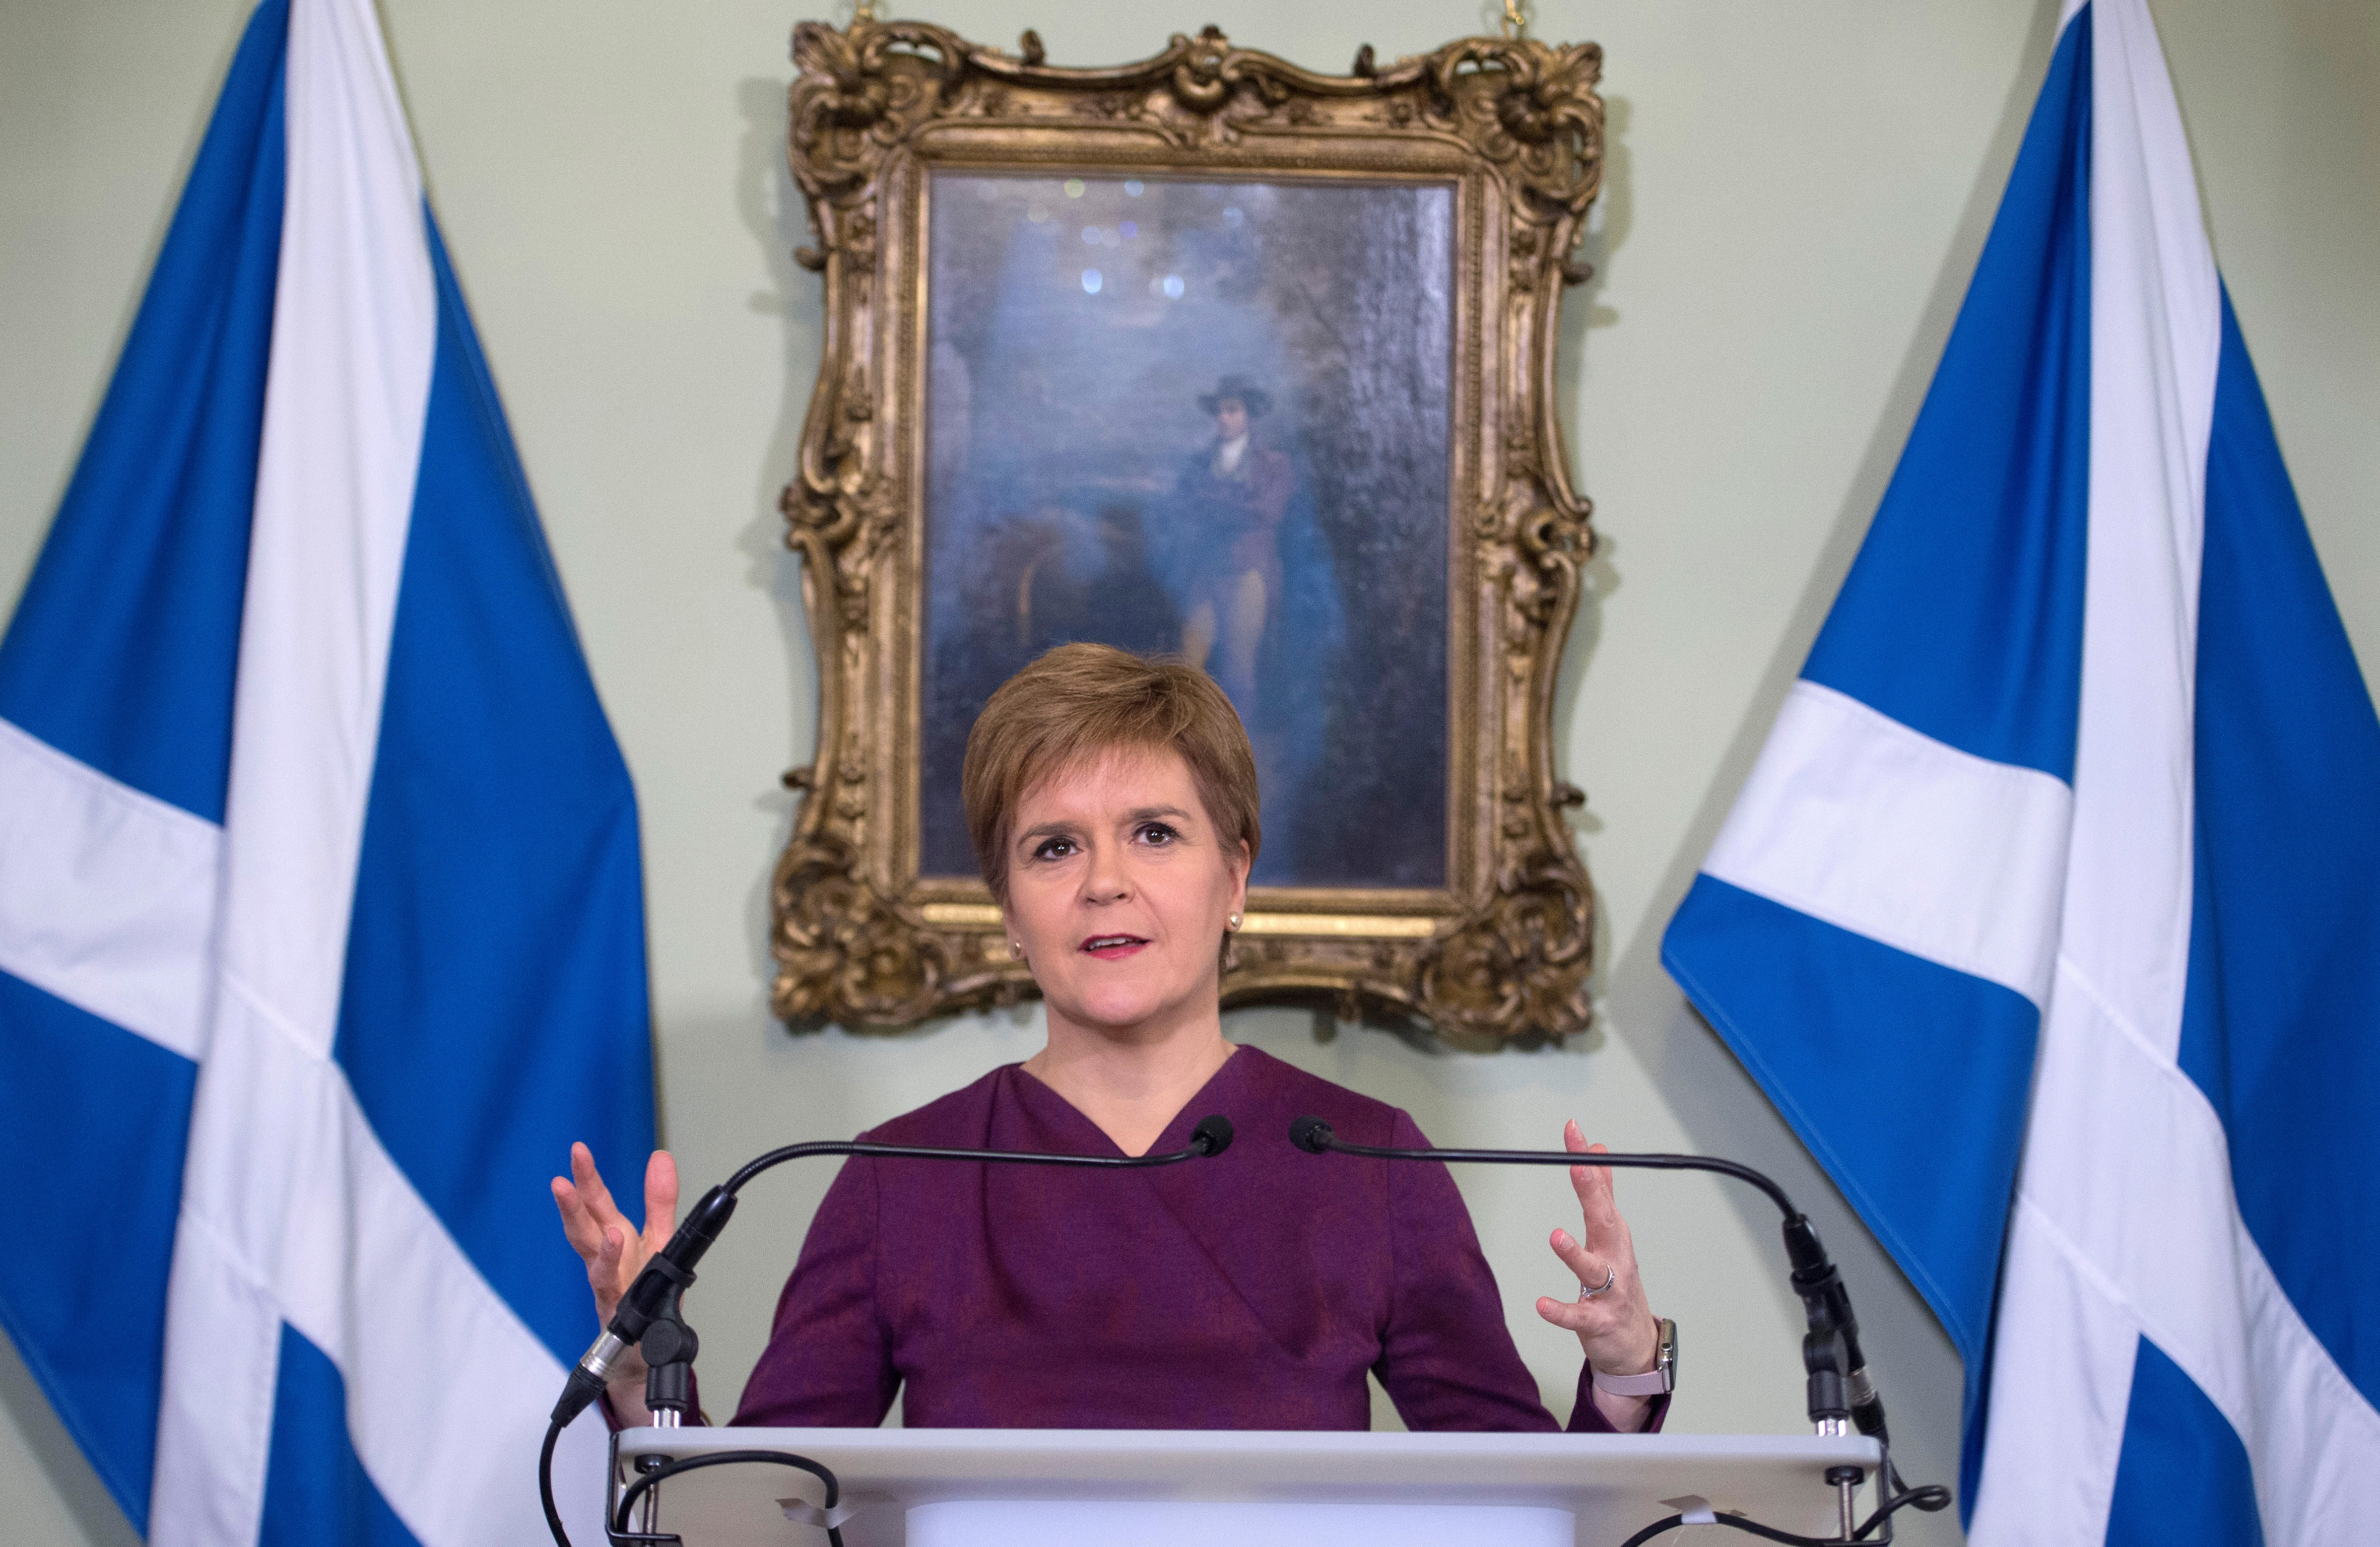 Scottish National Party (SNP) leader and Scotland's First Minister Nicola Sturgeon speaks at Bute House in Edinburgh, Scotland, Britain December 19, 2019.  Neil Hanna/Pool via REUTERS